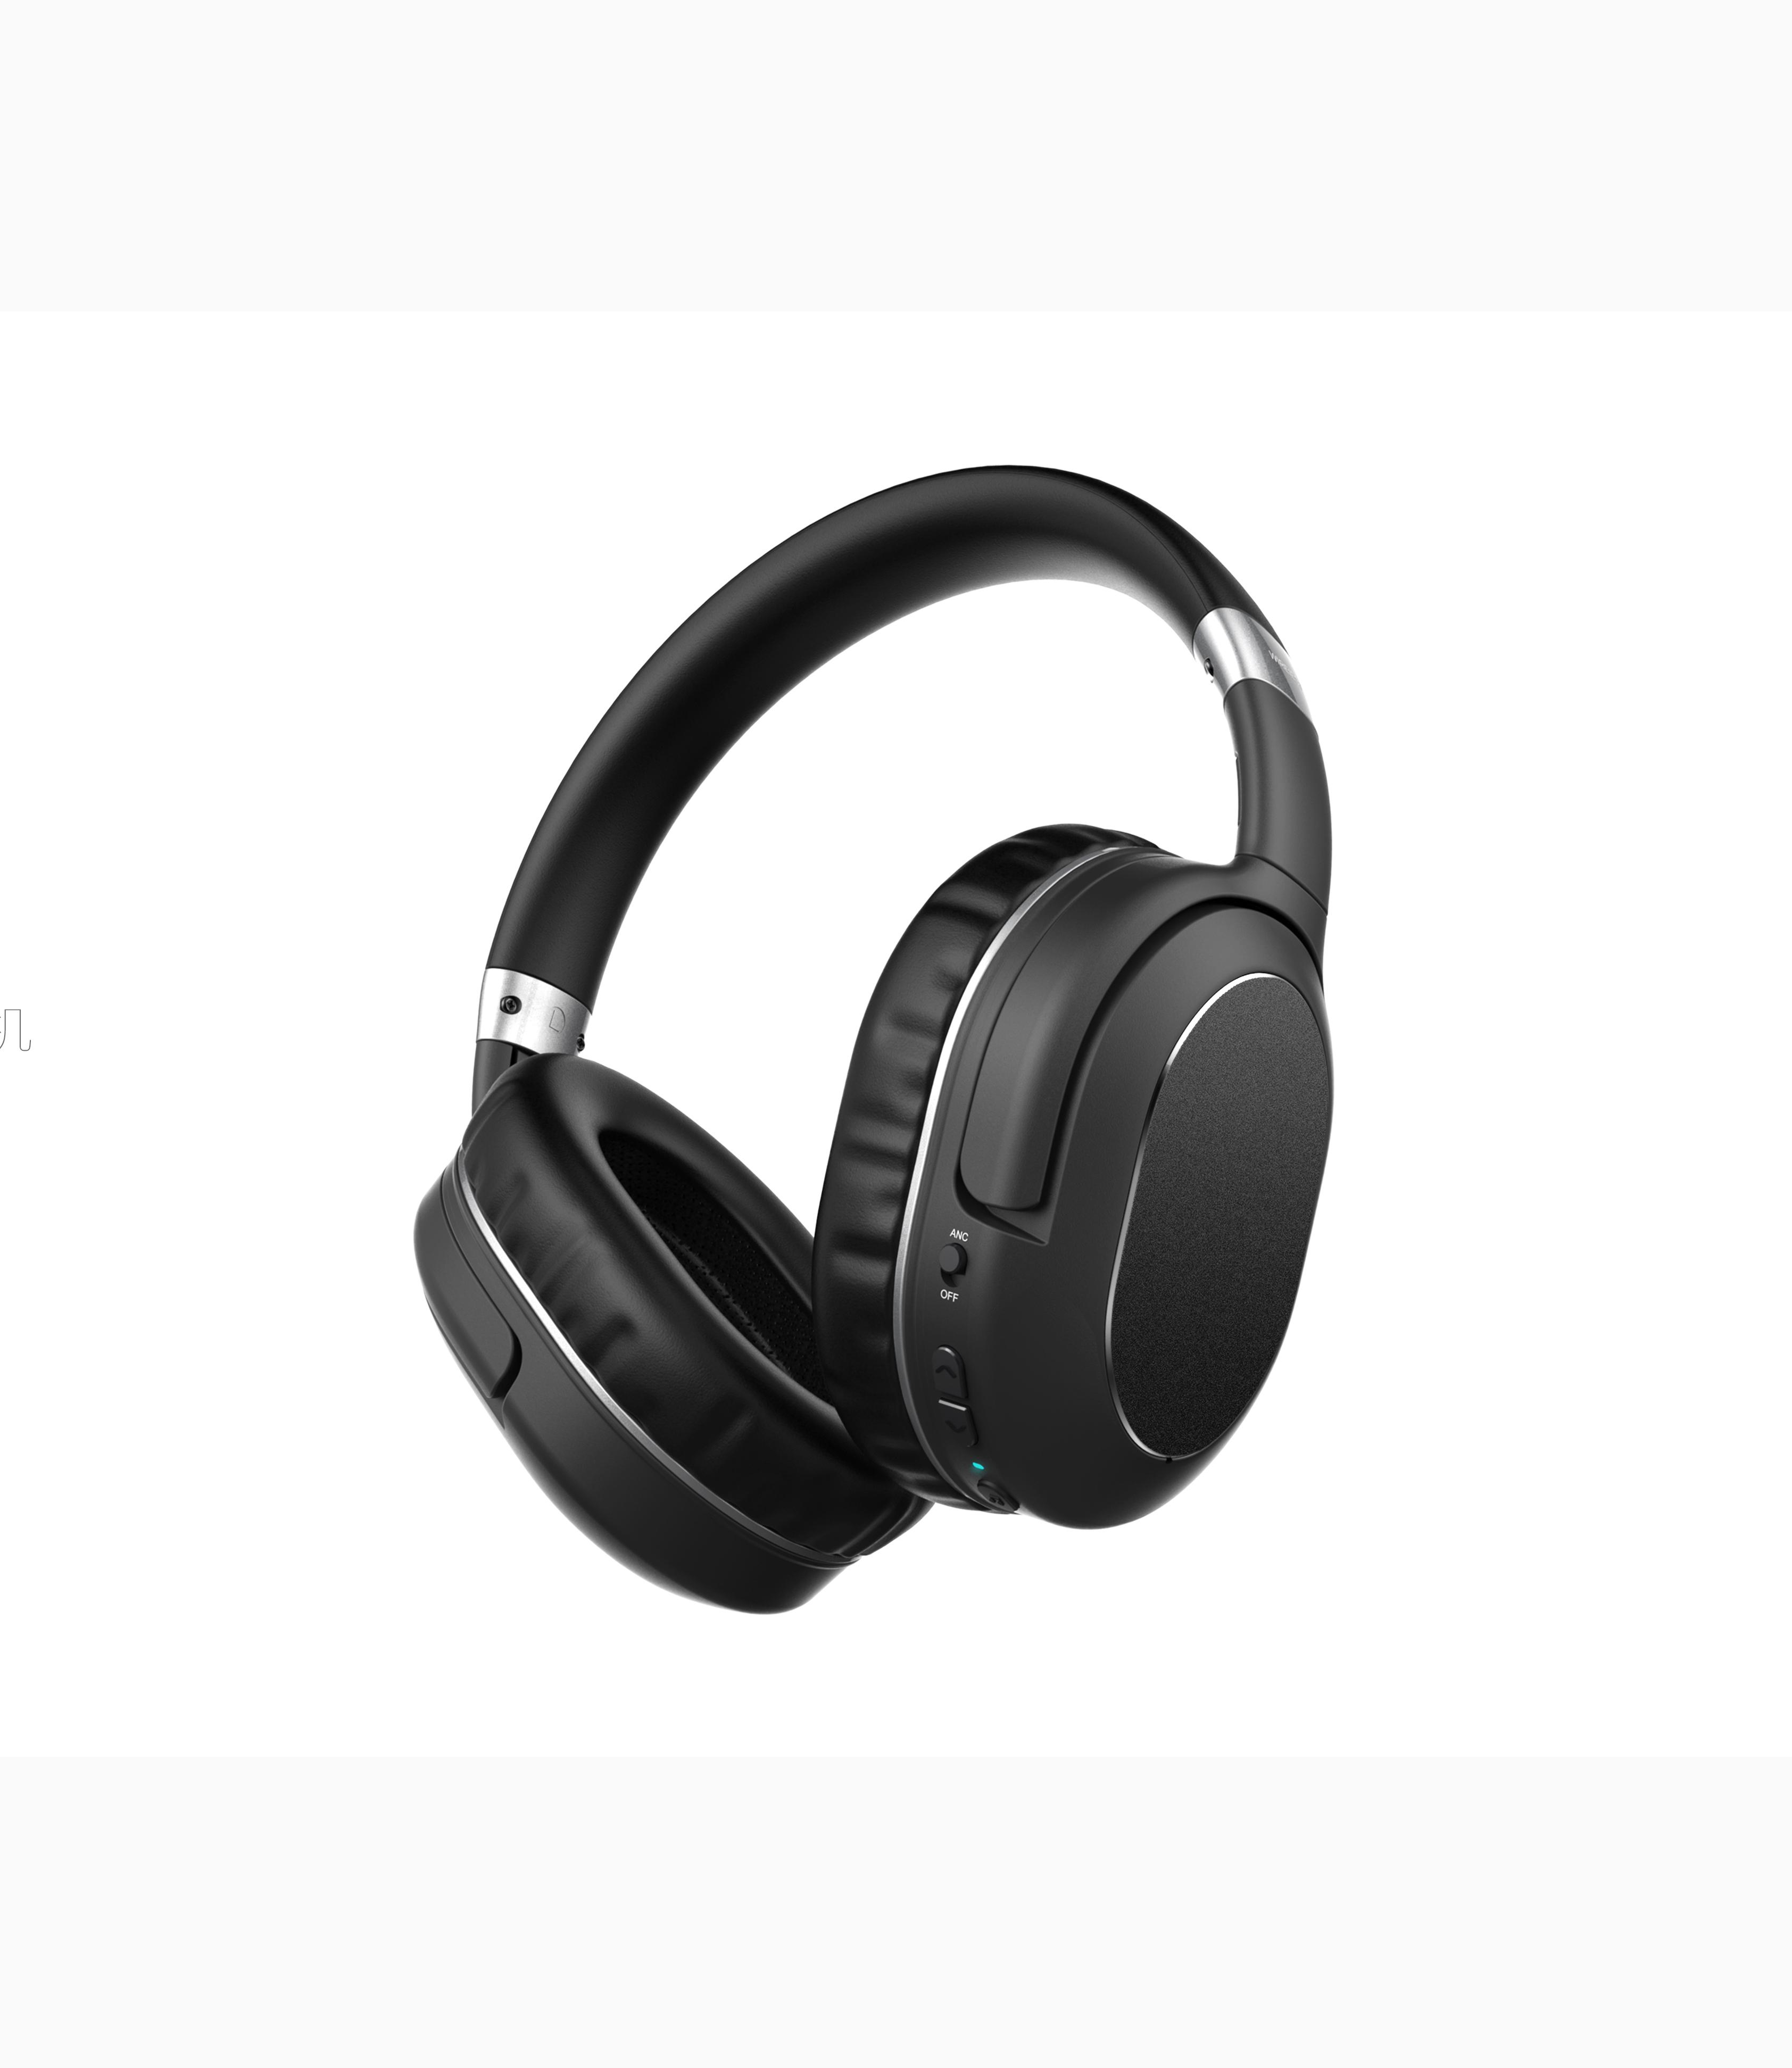 Headband Anc Tws Bluetooth Headphones Over Ear Noise Hifi Stereo Canceling Gaming Headset With Mic For Wearing Headphones For Dhl Bluetooth Headphone Headphone Bluetooth From Saomao 334 18 Dhgate Com